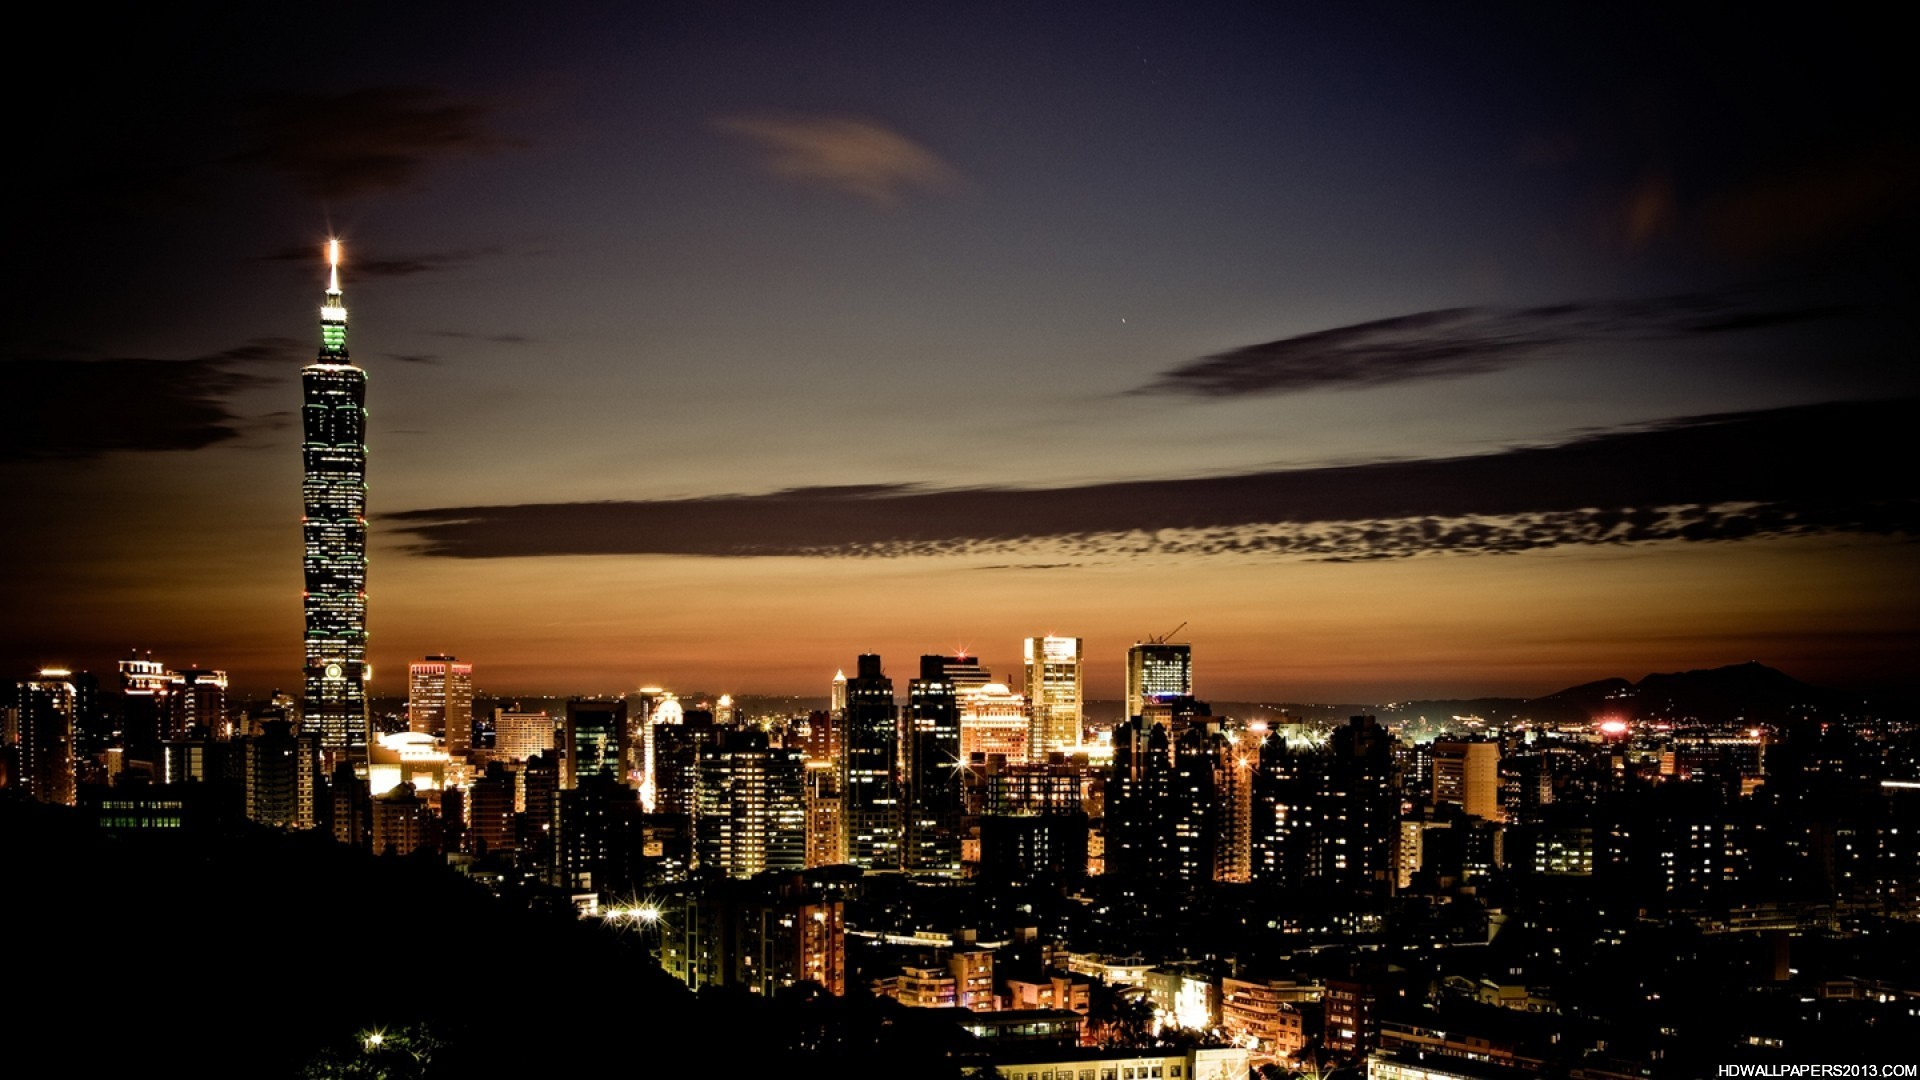 City wallpaper at night High Definition Wallpapers High Definition 1920x1080